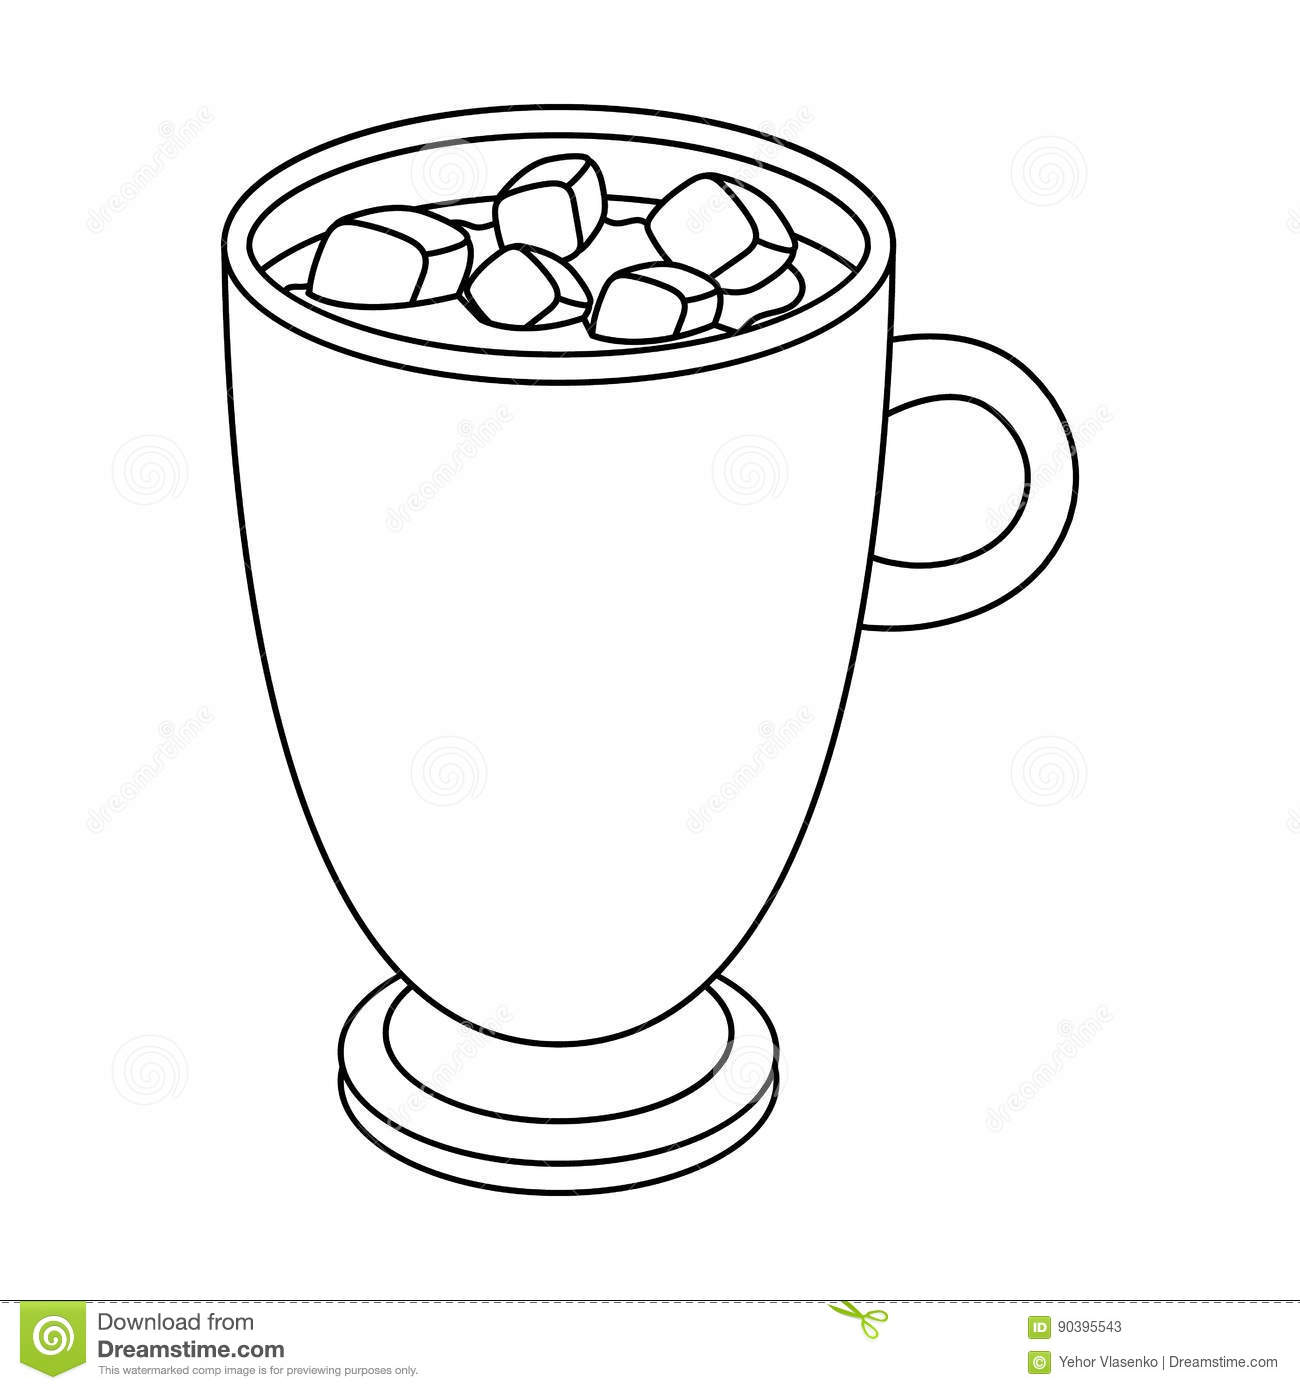 Hot chocolate clipart coffee free clip art stock illustrations jpg.